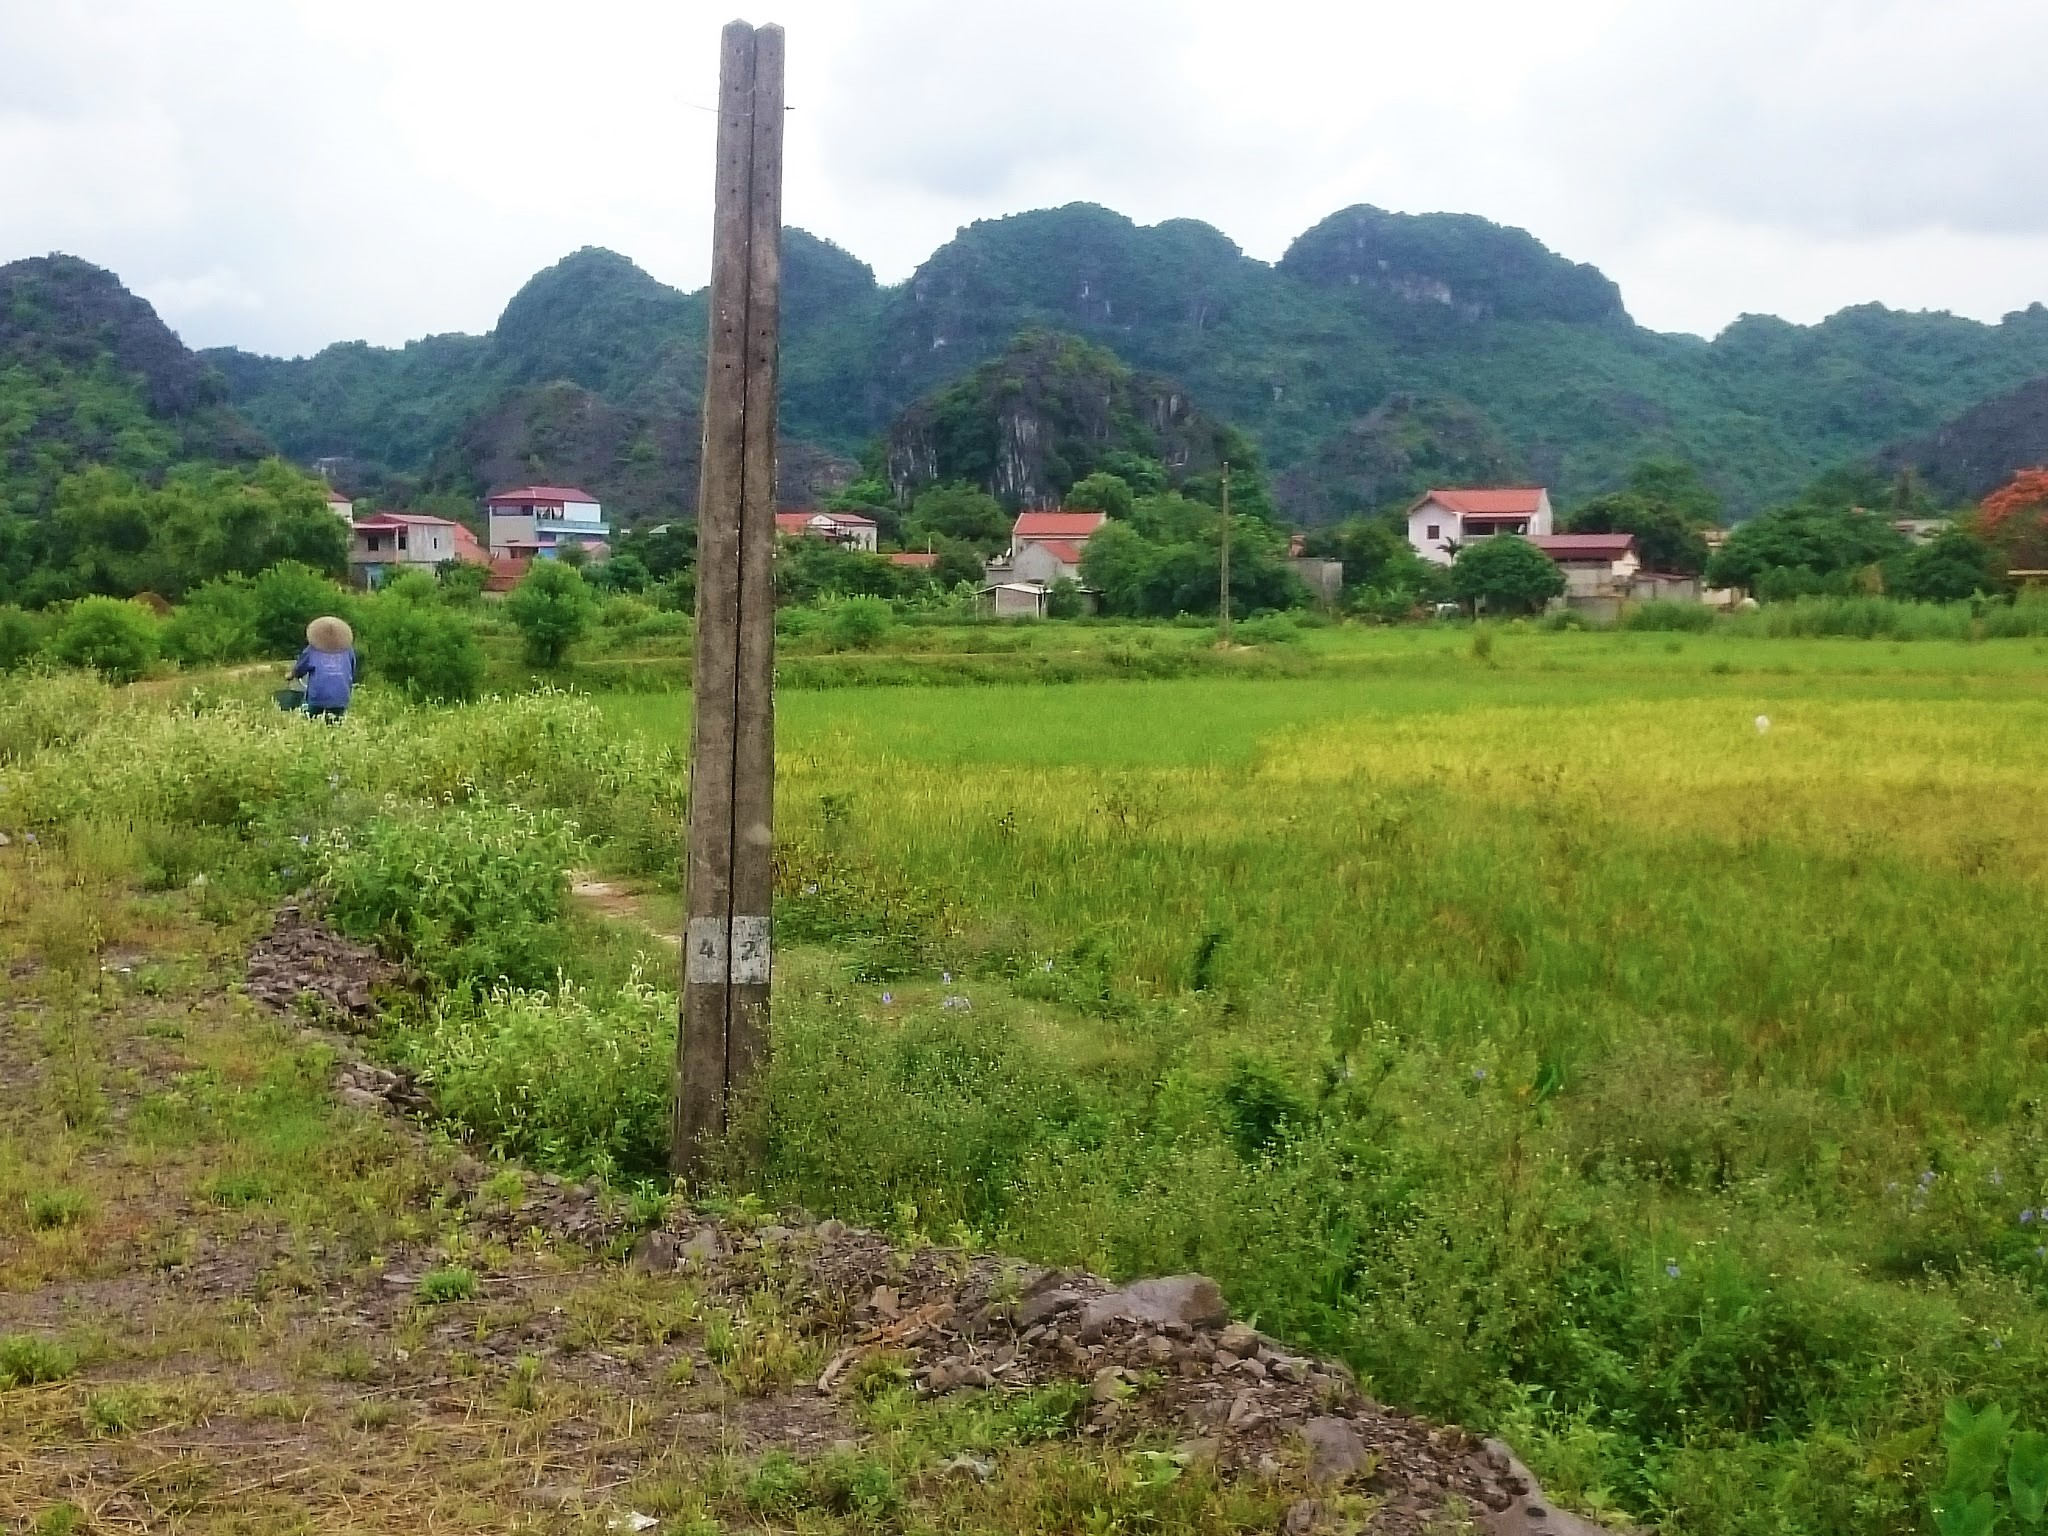 Bike riding in Tam Coc countryside